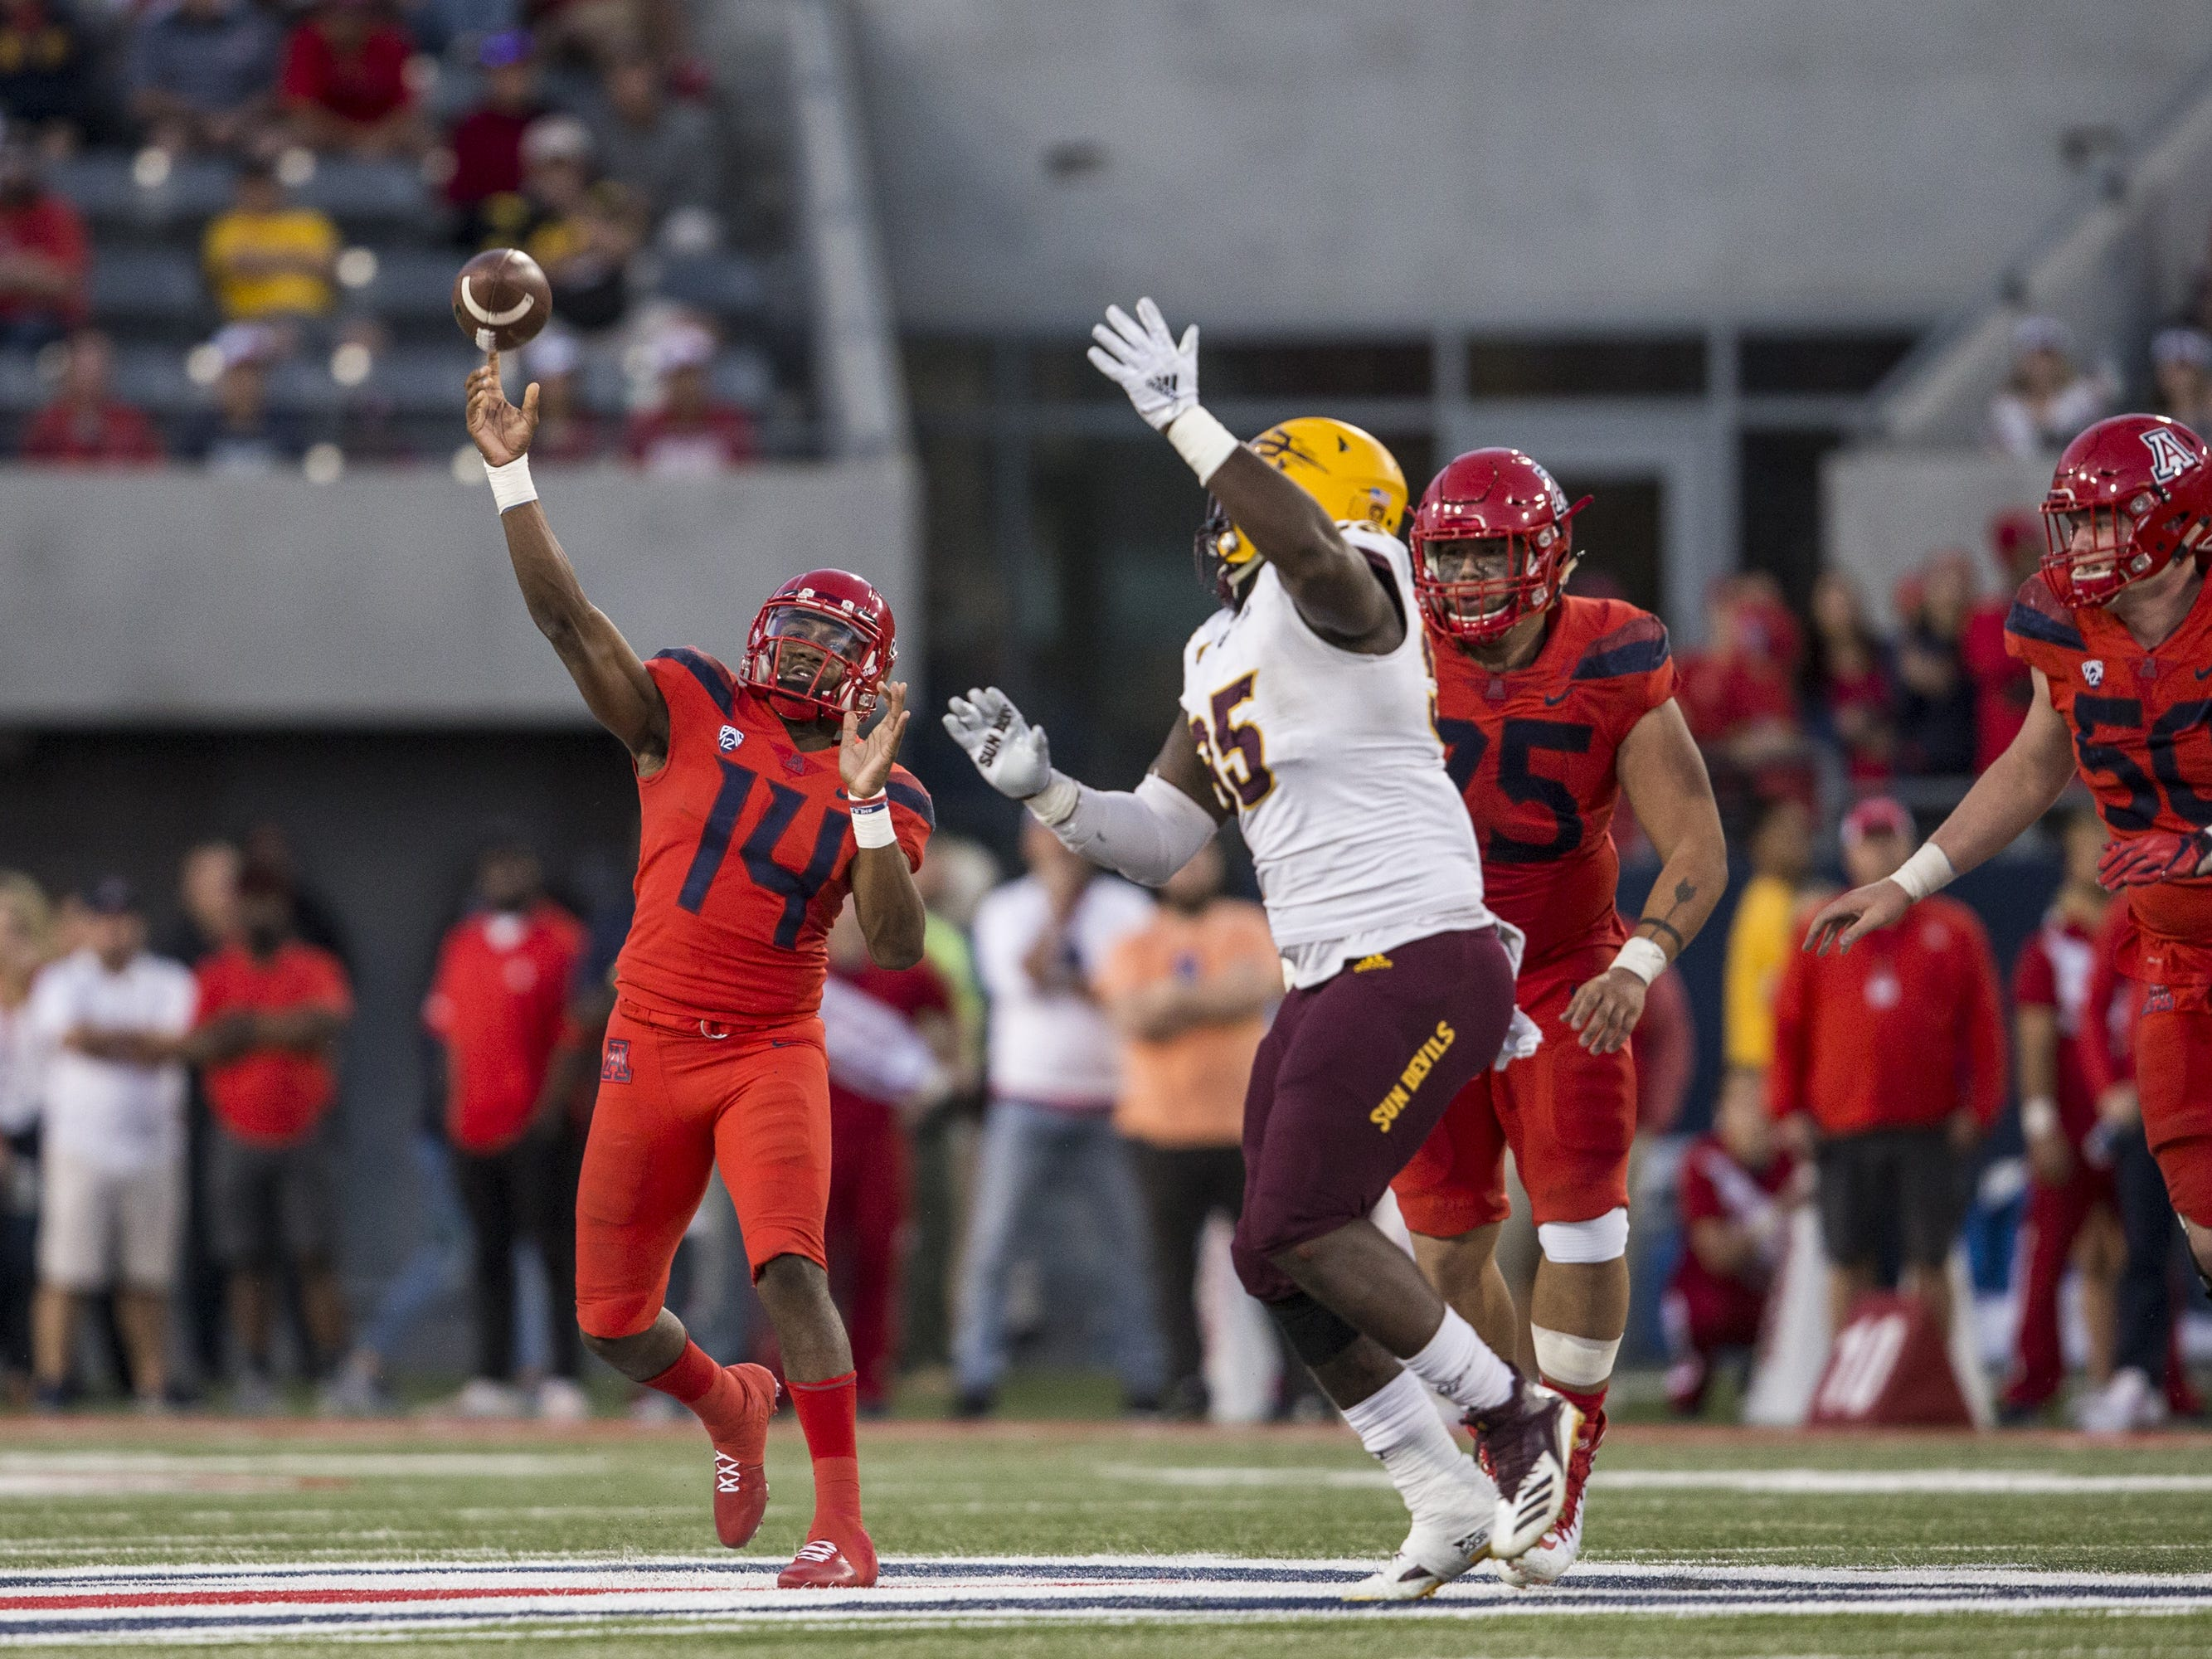 Arizona's Khalil Tate throws against Arizona State during the second half of the Territorial Cup on Saturday, Nov. 24, 2018, at Arizona Stadium in Tucson, Ariz. Arizona State won, 41-40.